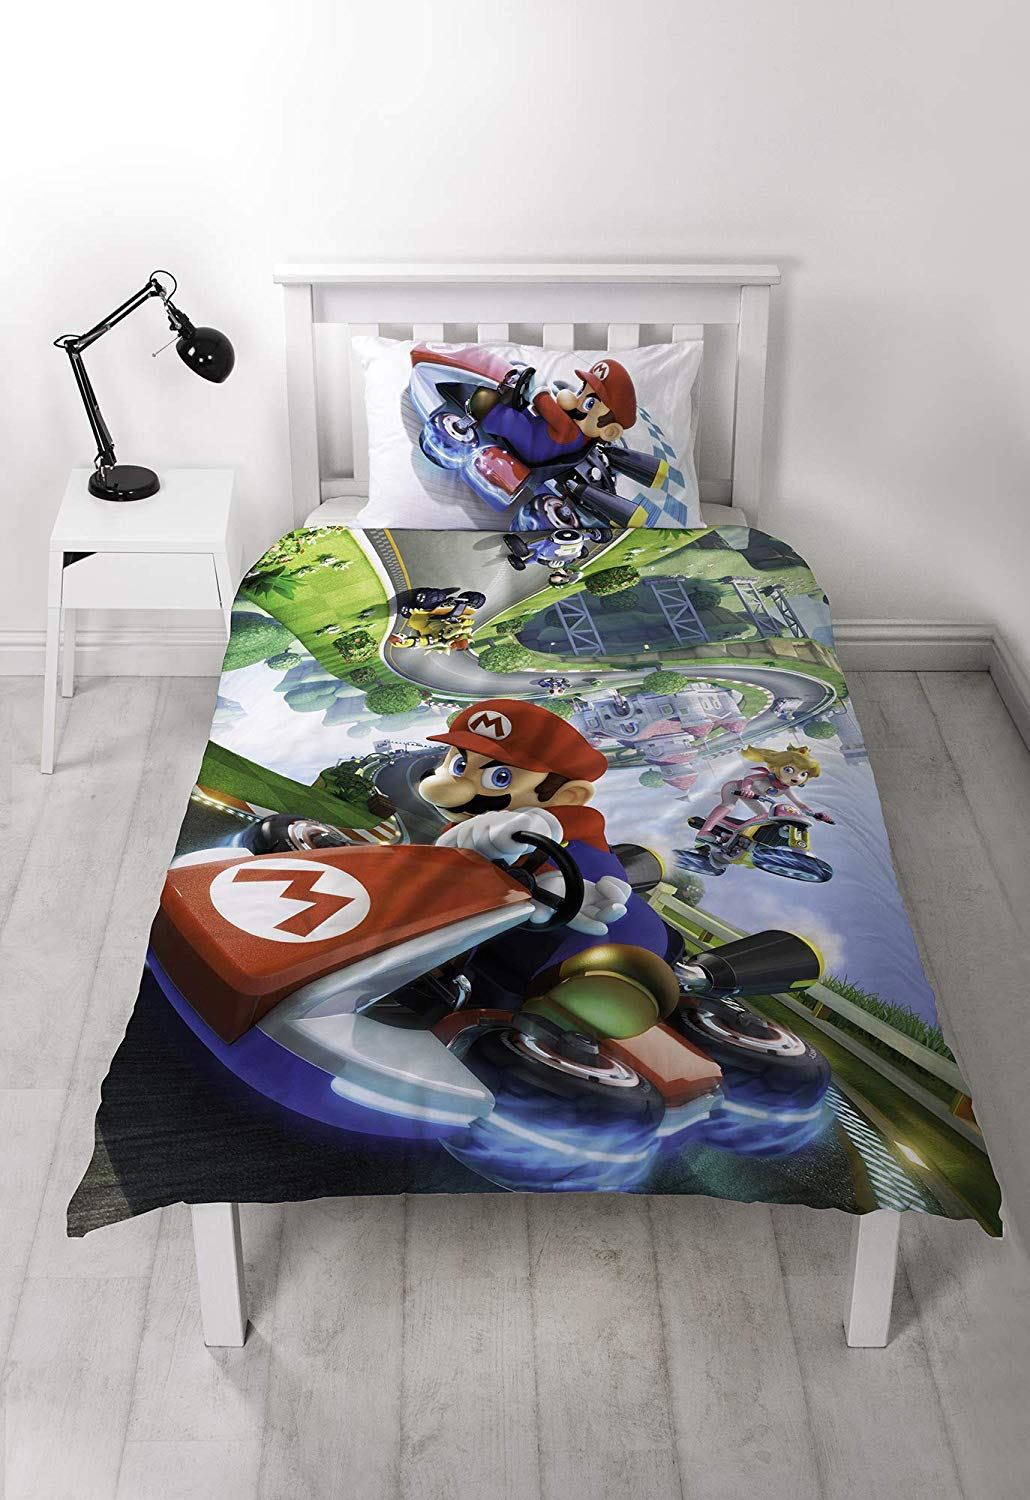 Official-Nintendo-Super-Mario-Licensed-Duvet-Covers-Single-Double-Odyssey-Maker